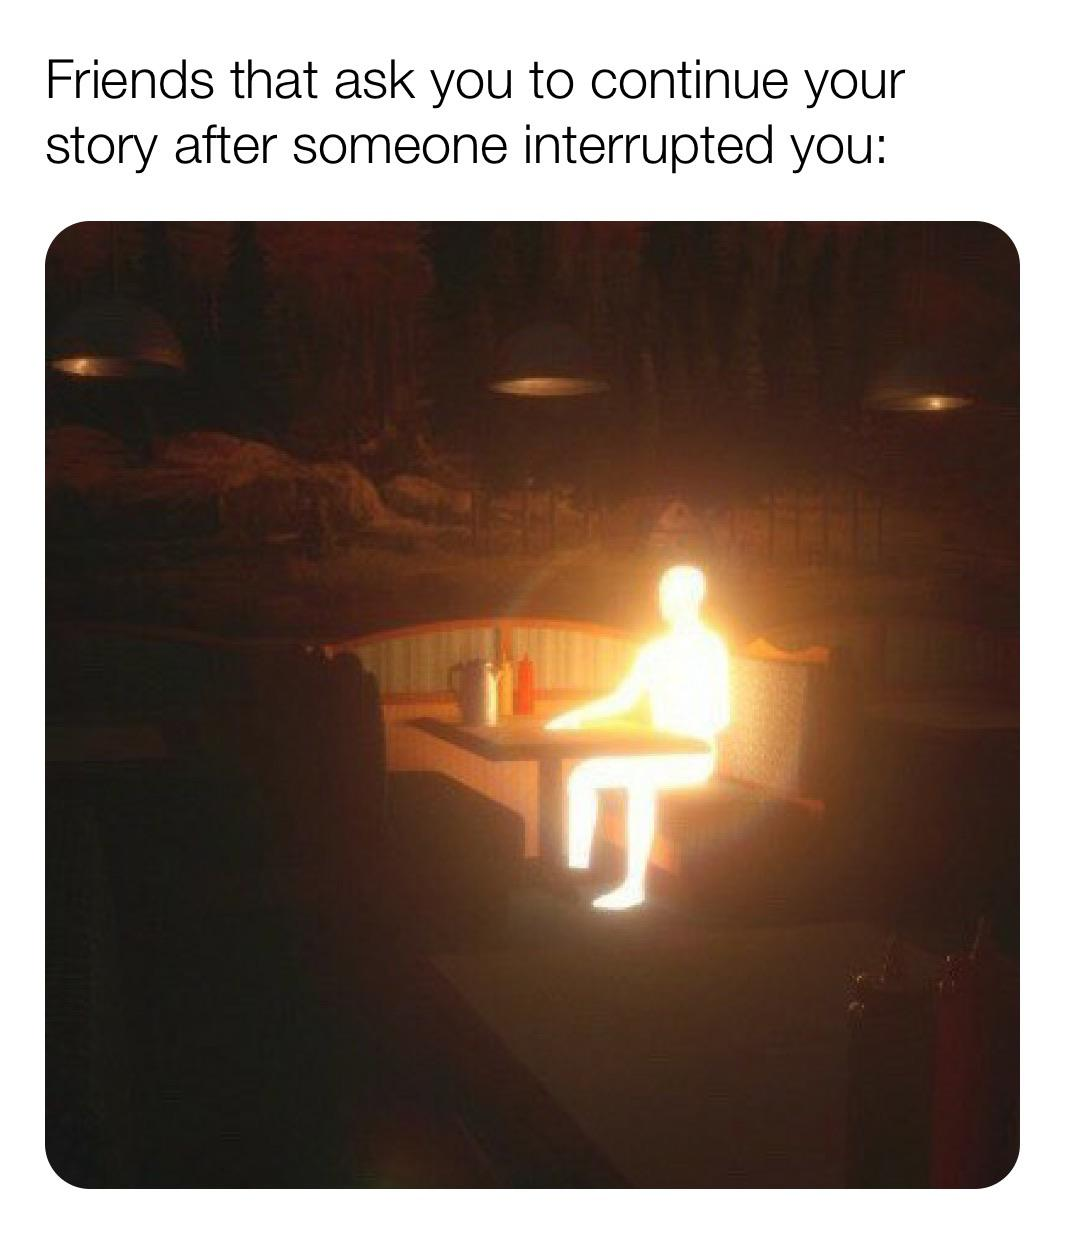 Cute, wholesome memes, Naruto Wholesome Memes Cute, wholesome memes, Naruto text: Friends that ask you to continue your story after someone interrupted you: